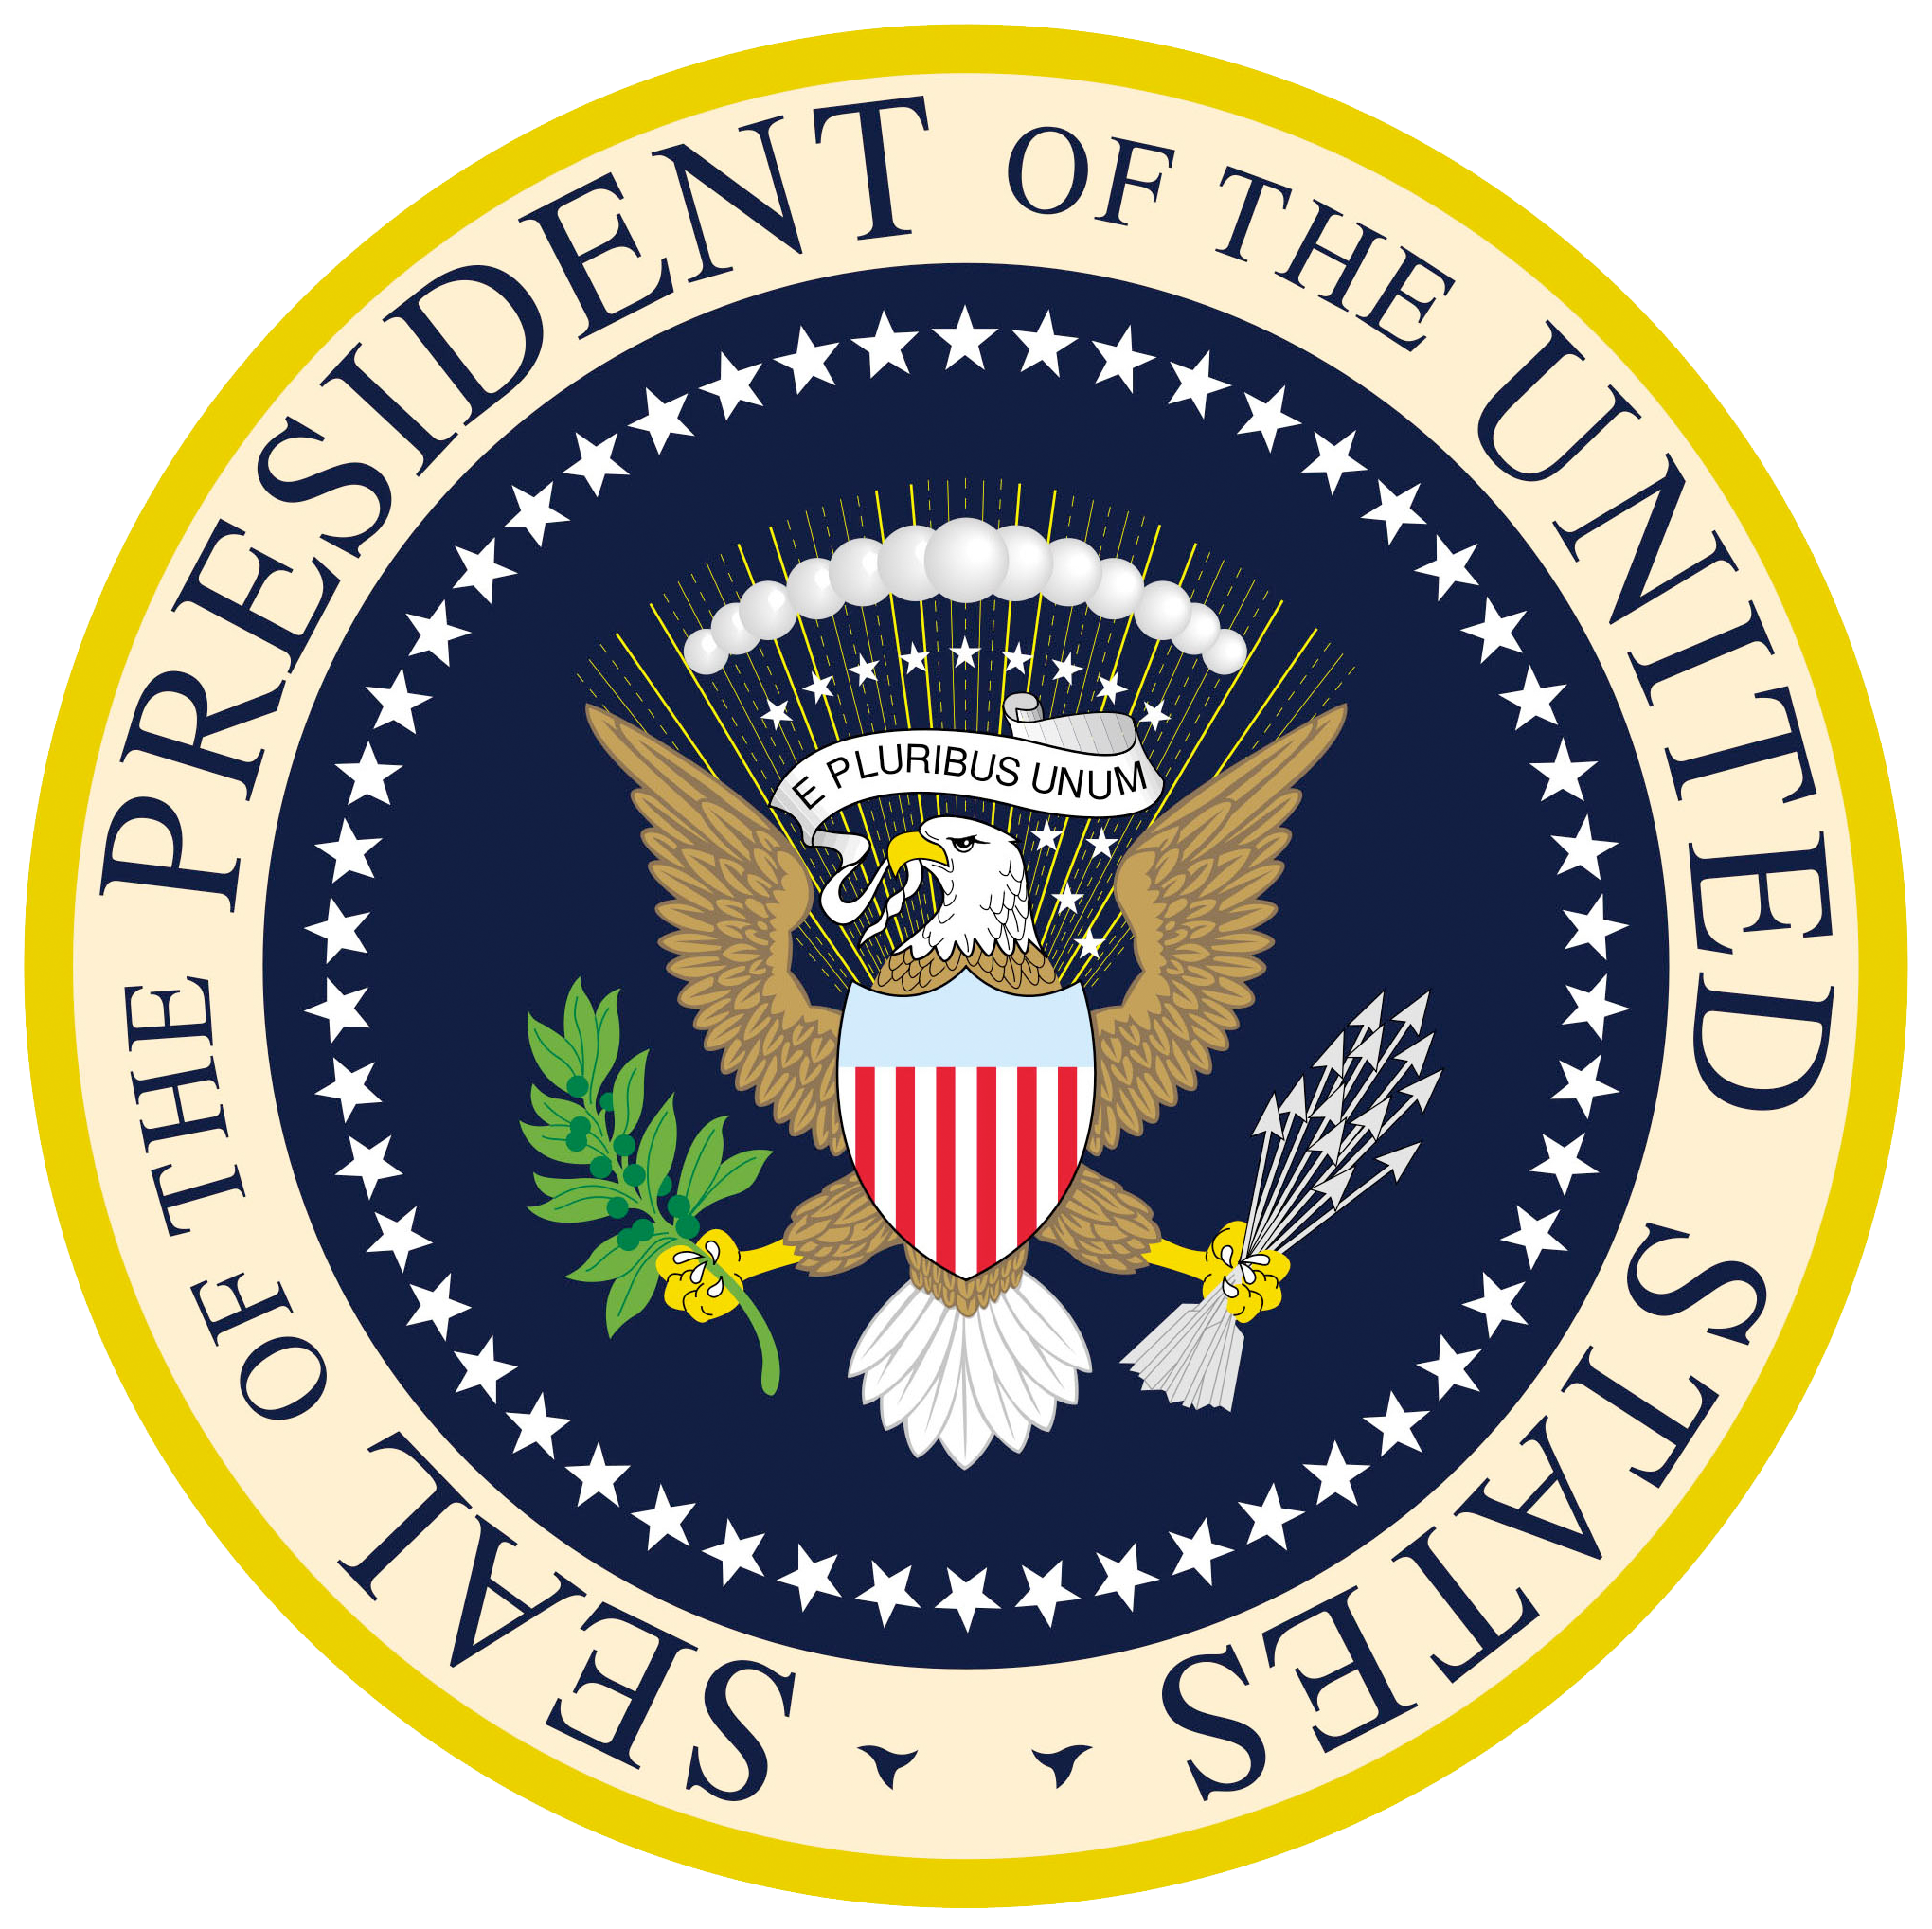 SEAL OF THE PRESIDENT OF THE UNITED SATES_NATIONAL DAY OF PRAYER TASK FORCE